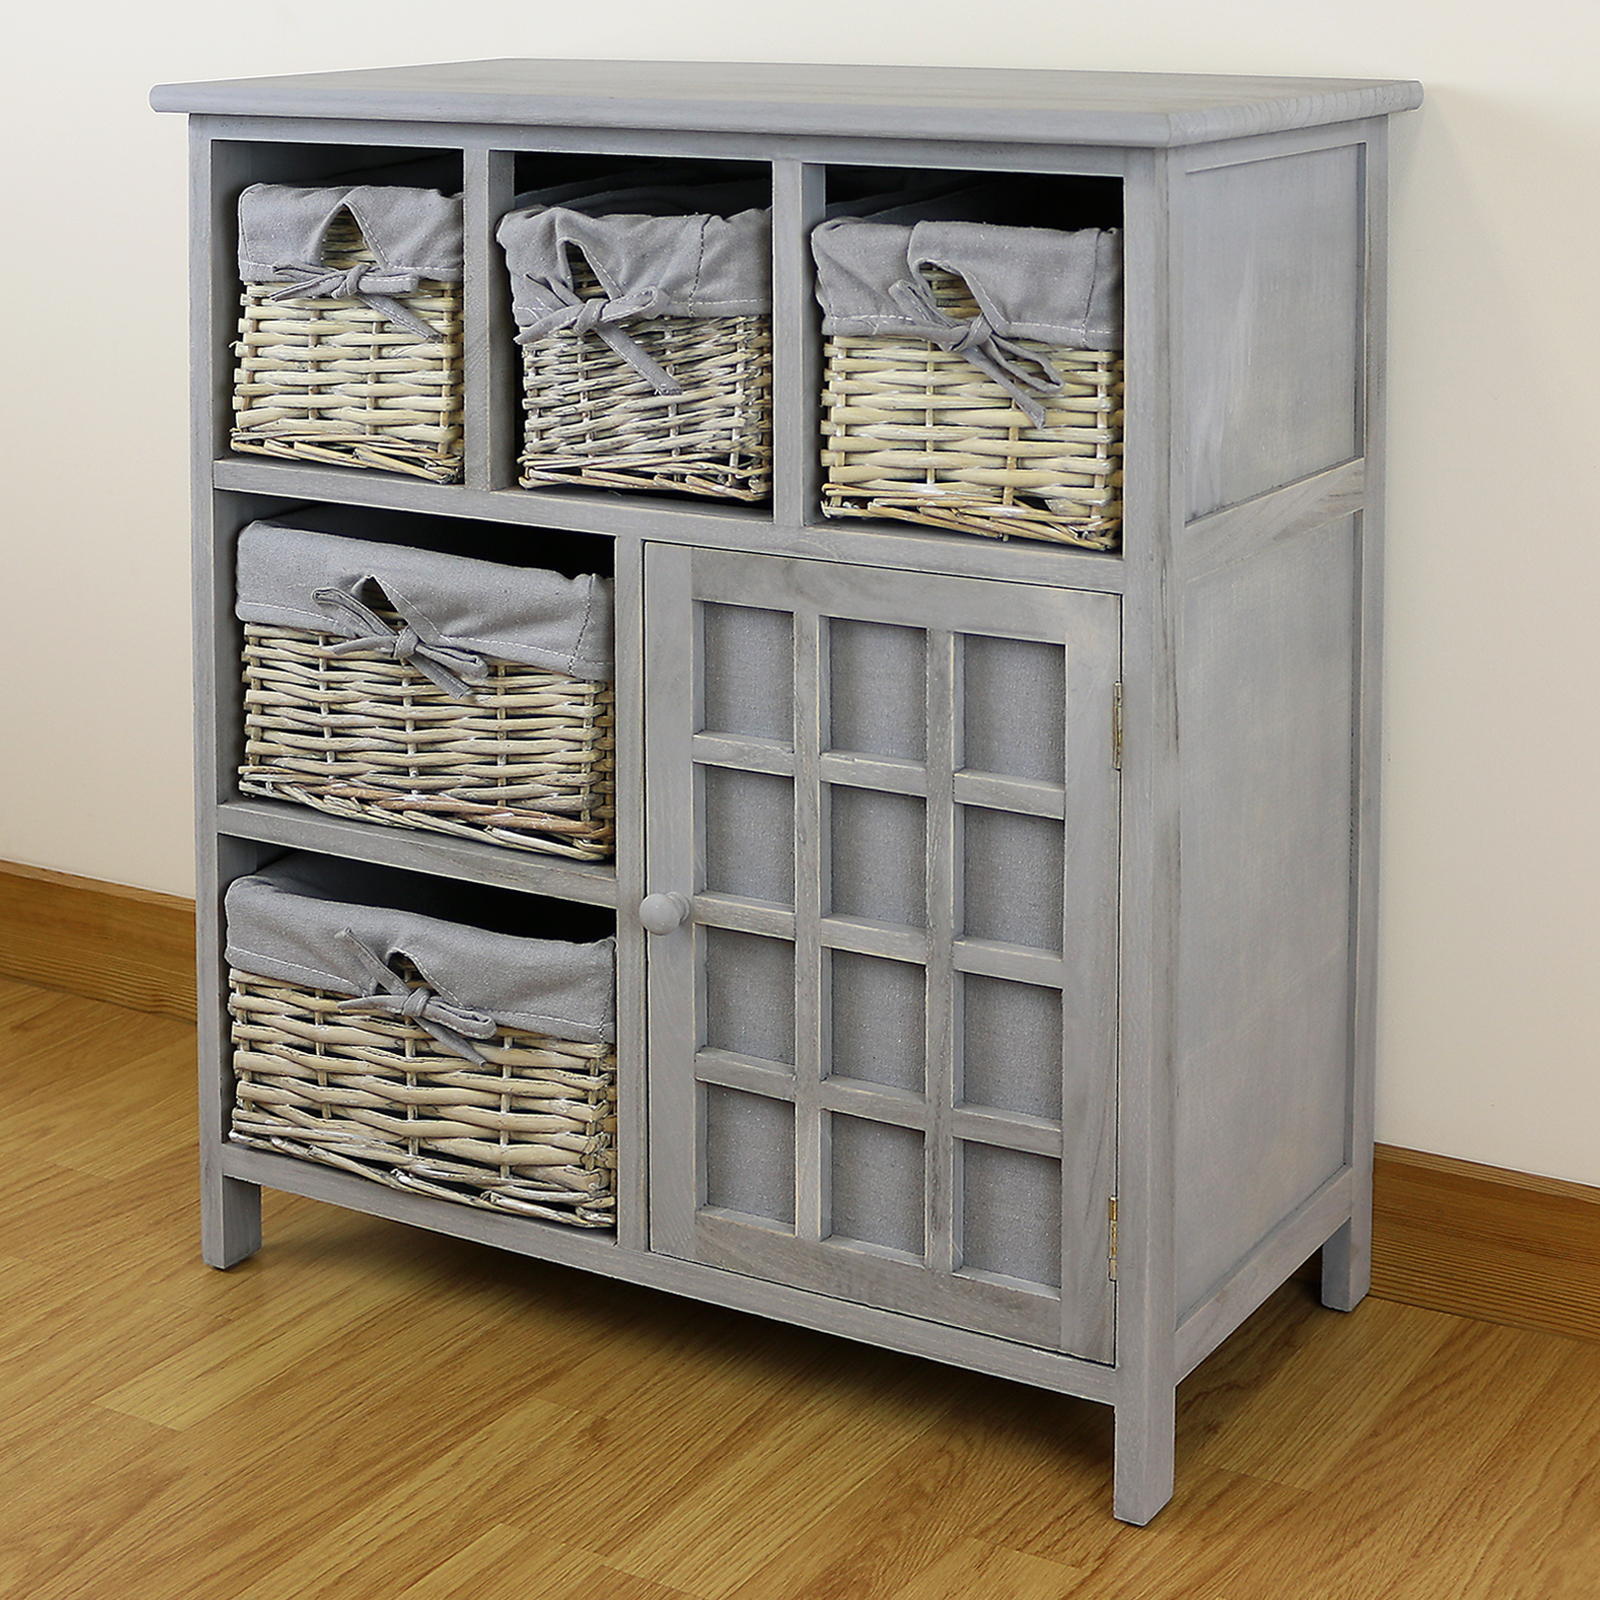 grey 5 drawer hallway bedroom storage unit farmhouse 19923 | fur 2043 20c